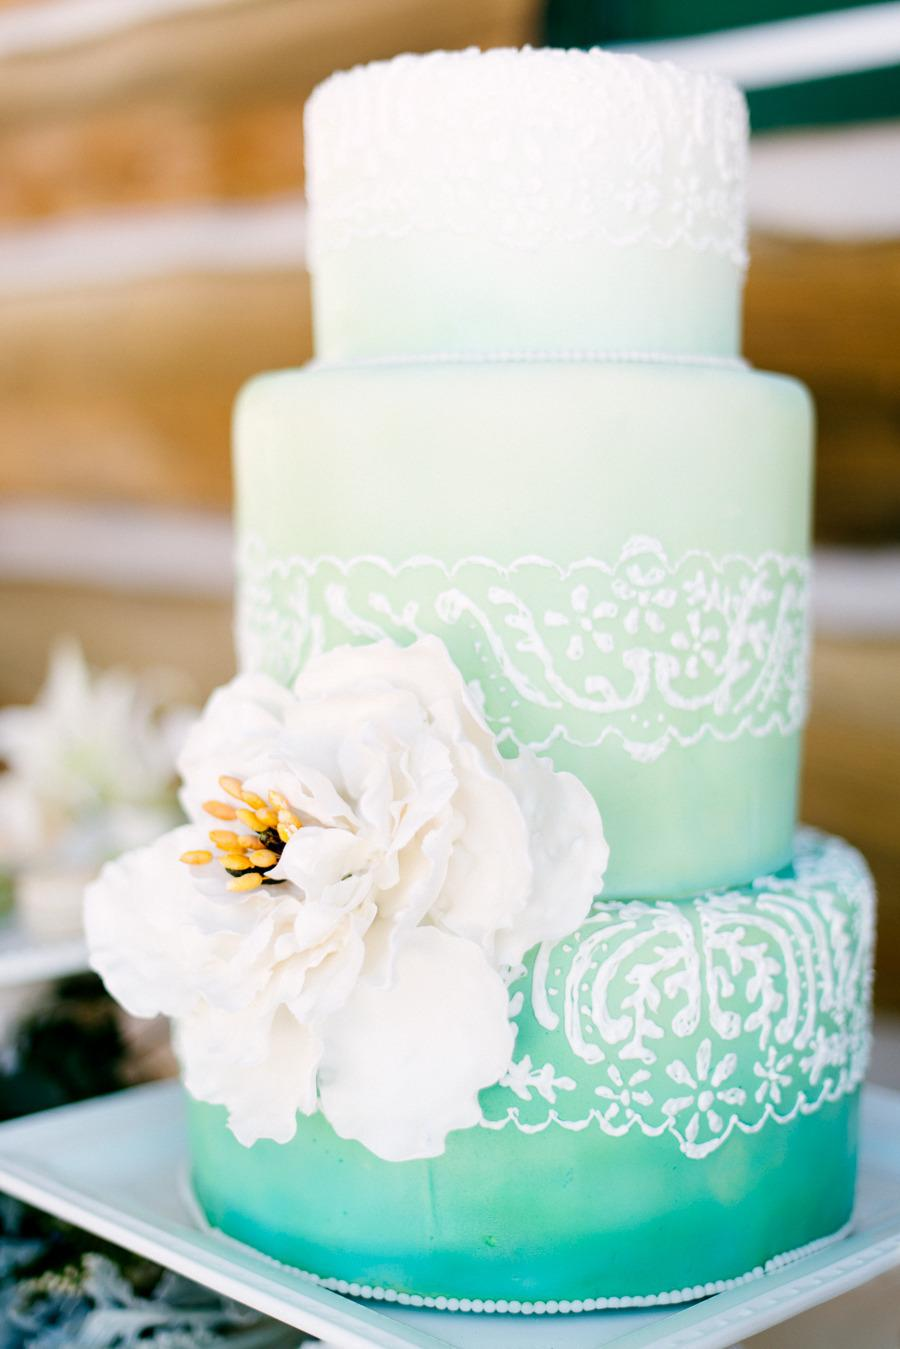 Wedding Cake Ideas For Summer Wedding : 25 Unique Wedding Cakes Ideas